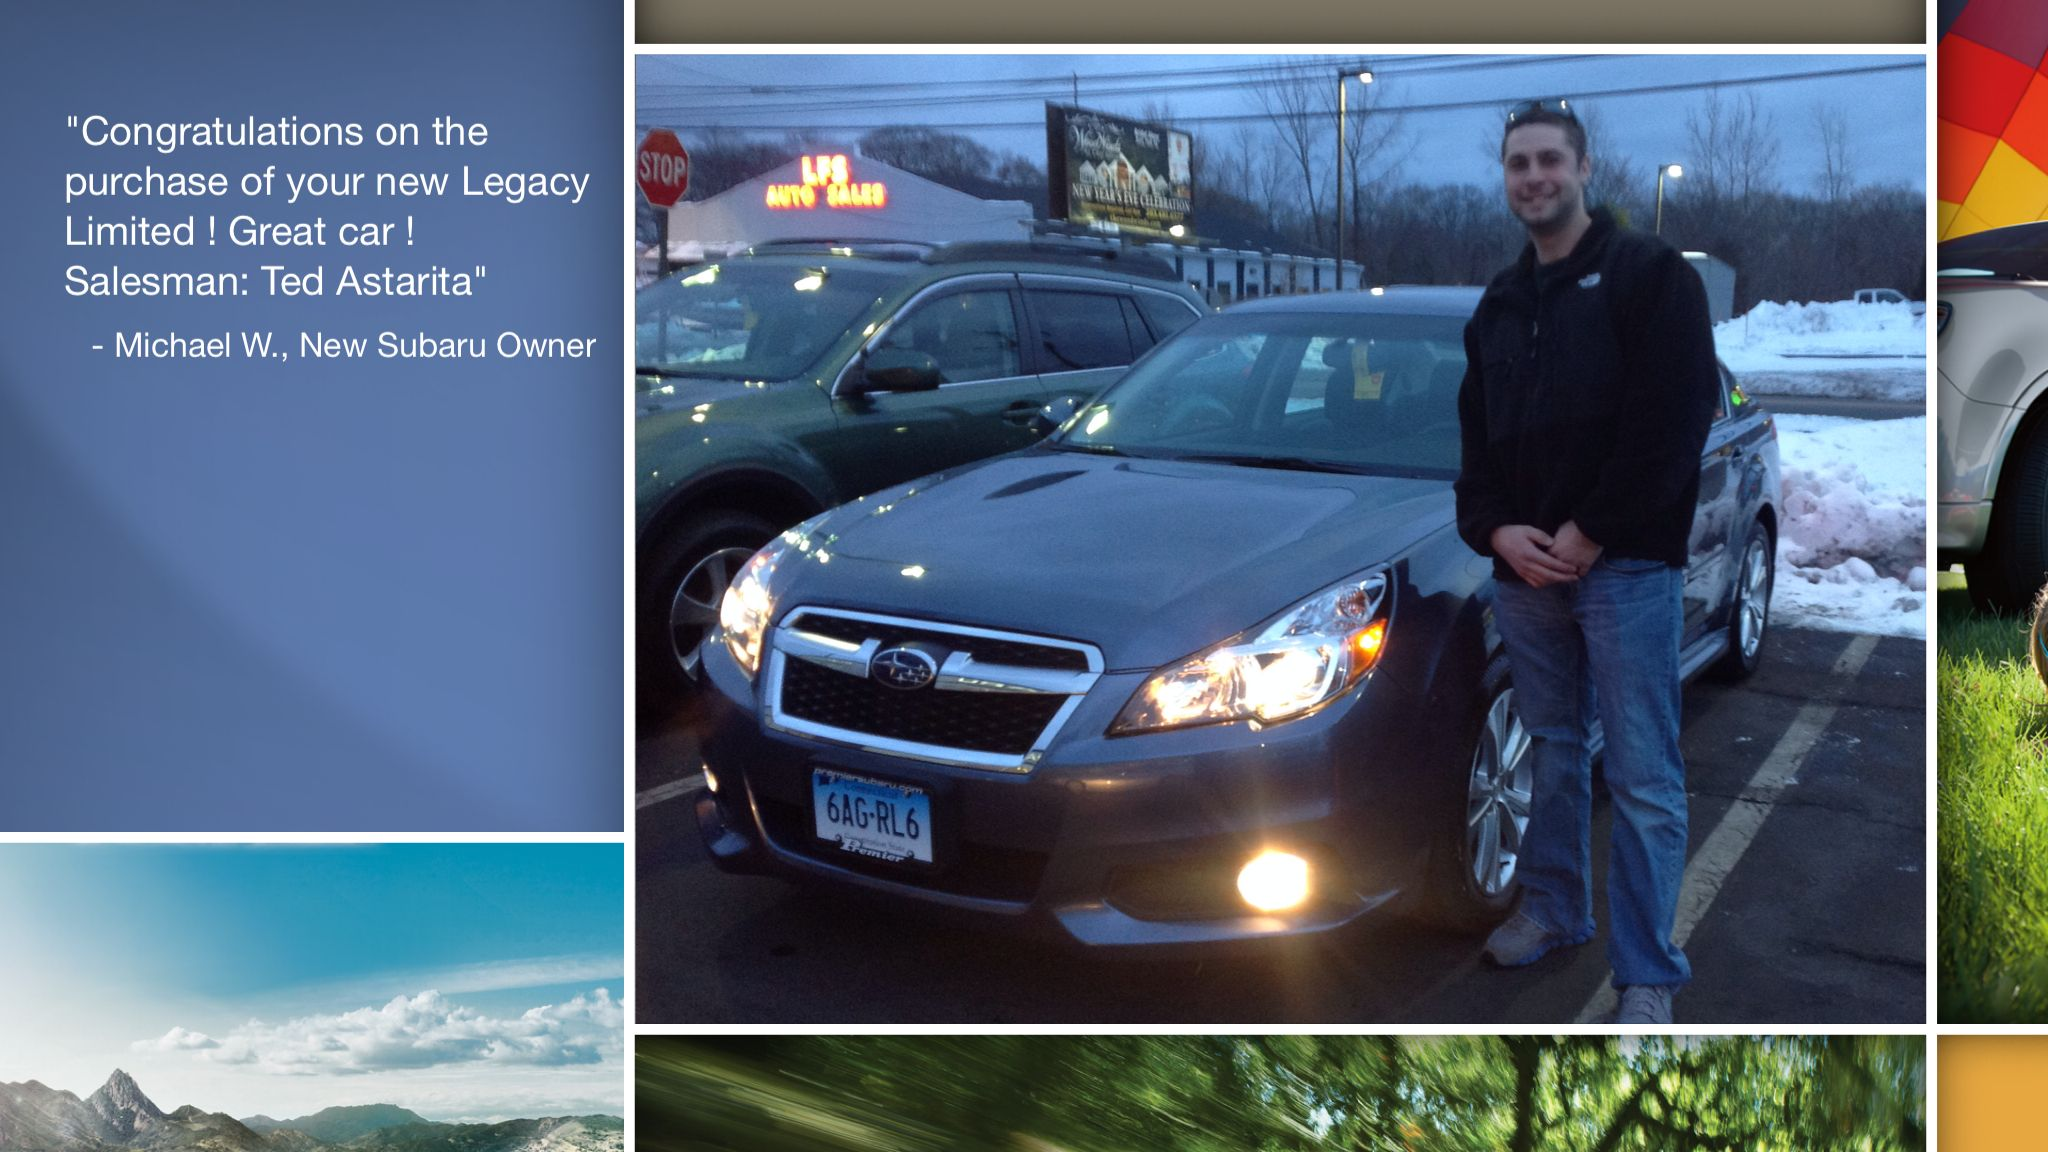 Dear Michael Williams   A heartfelt thank you for the purchase of your new Subaru from all of us at Premier Subaru.   We're proud to have you as part of the Subaru Family.